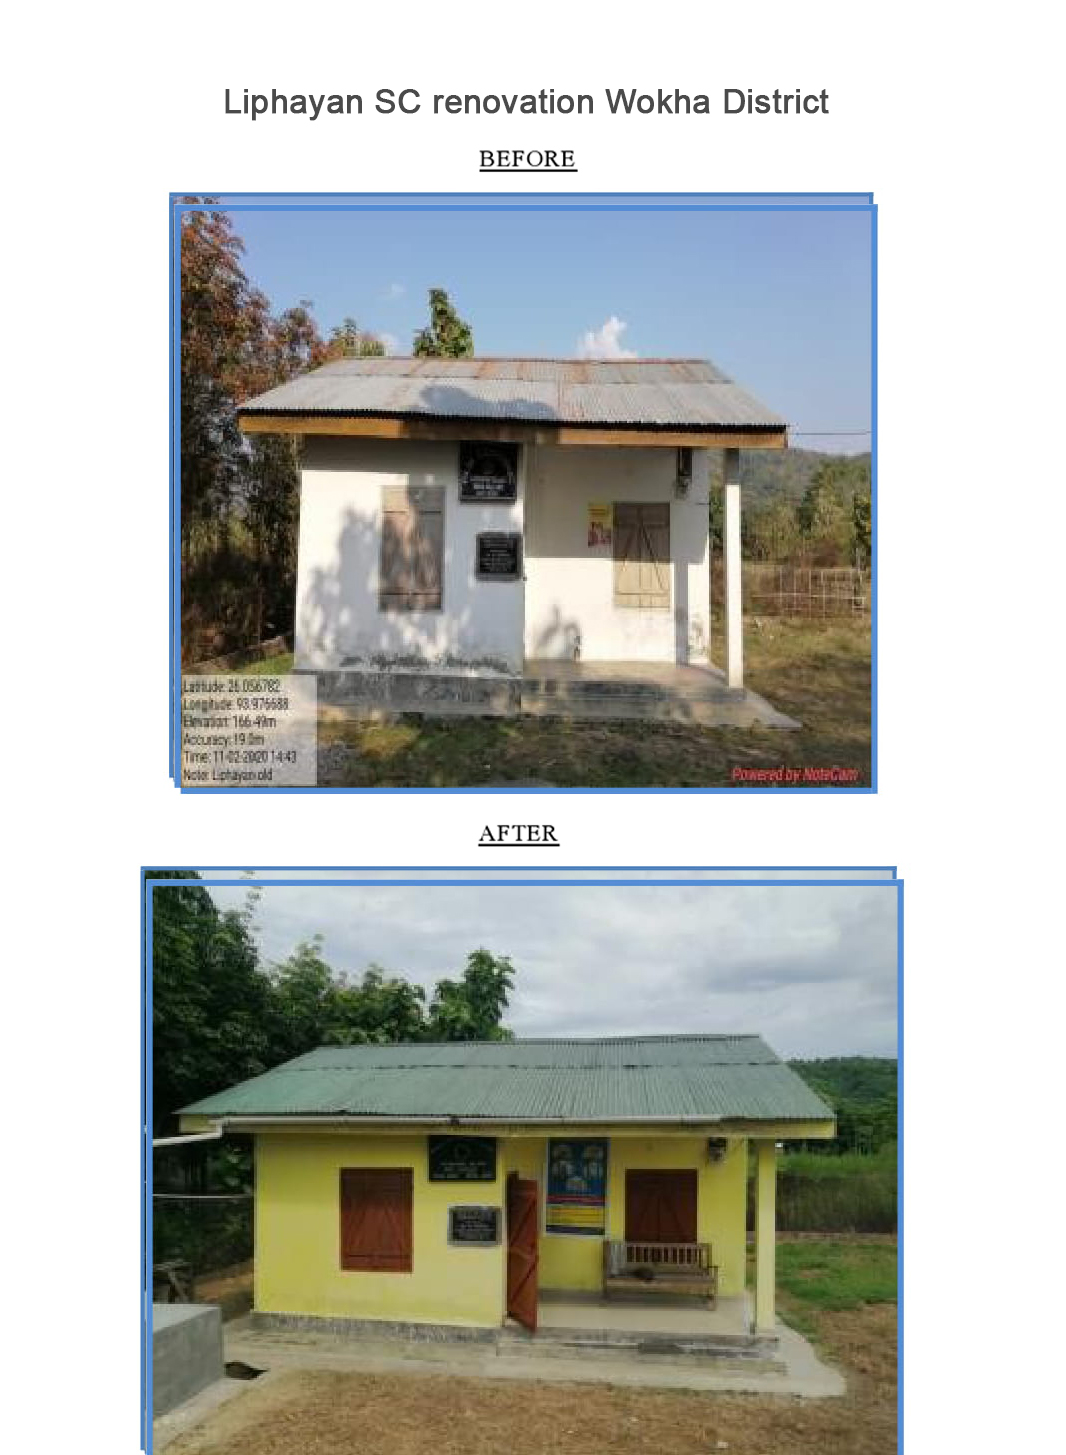 Liphayan-SC-renovation-Wokha-District